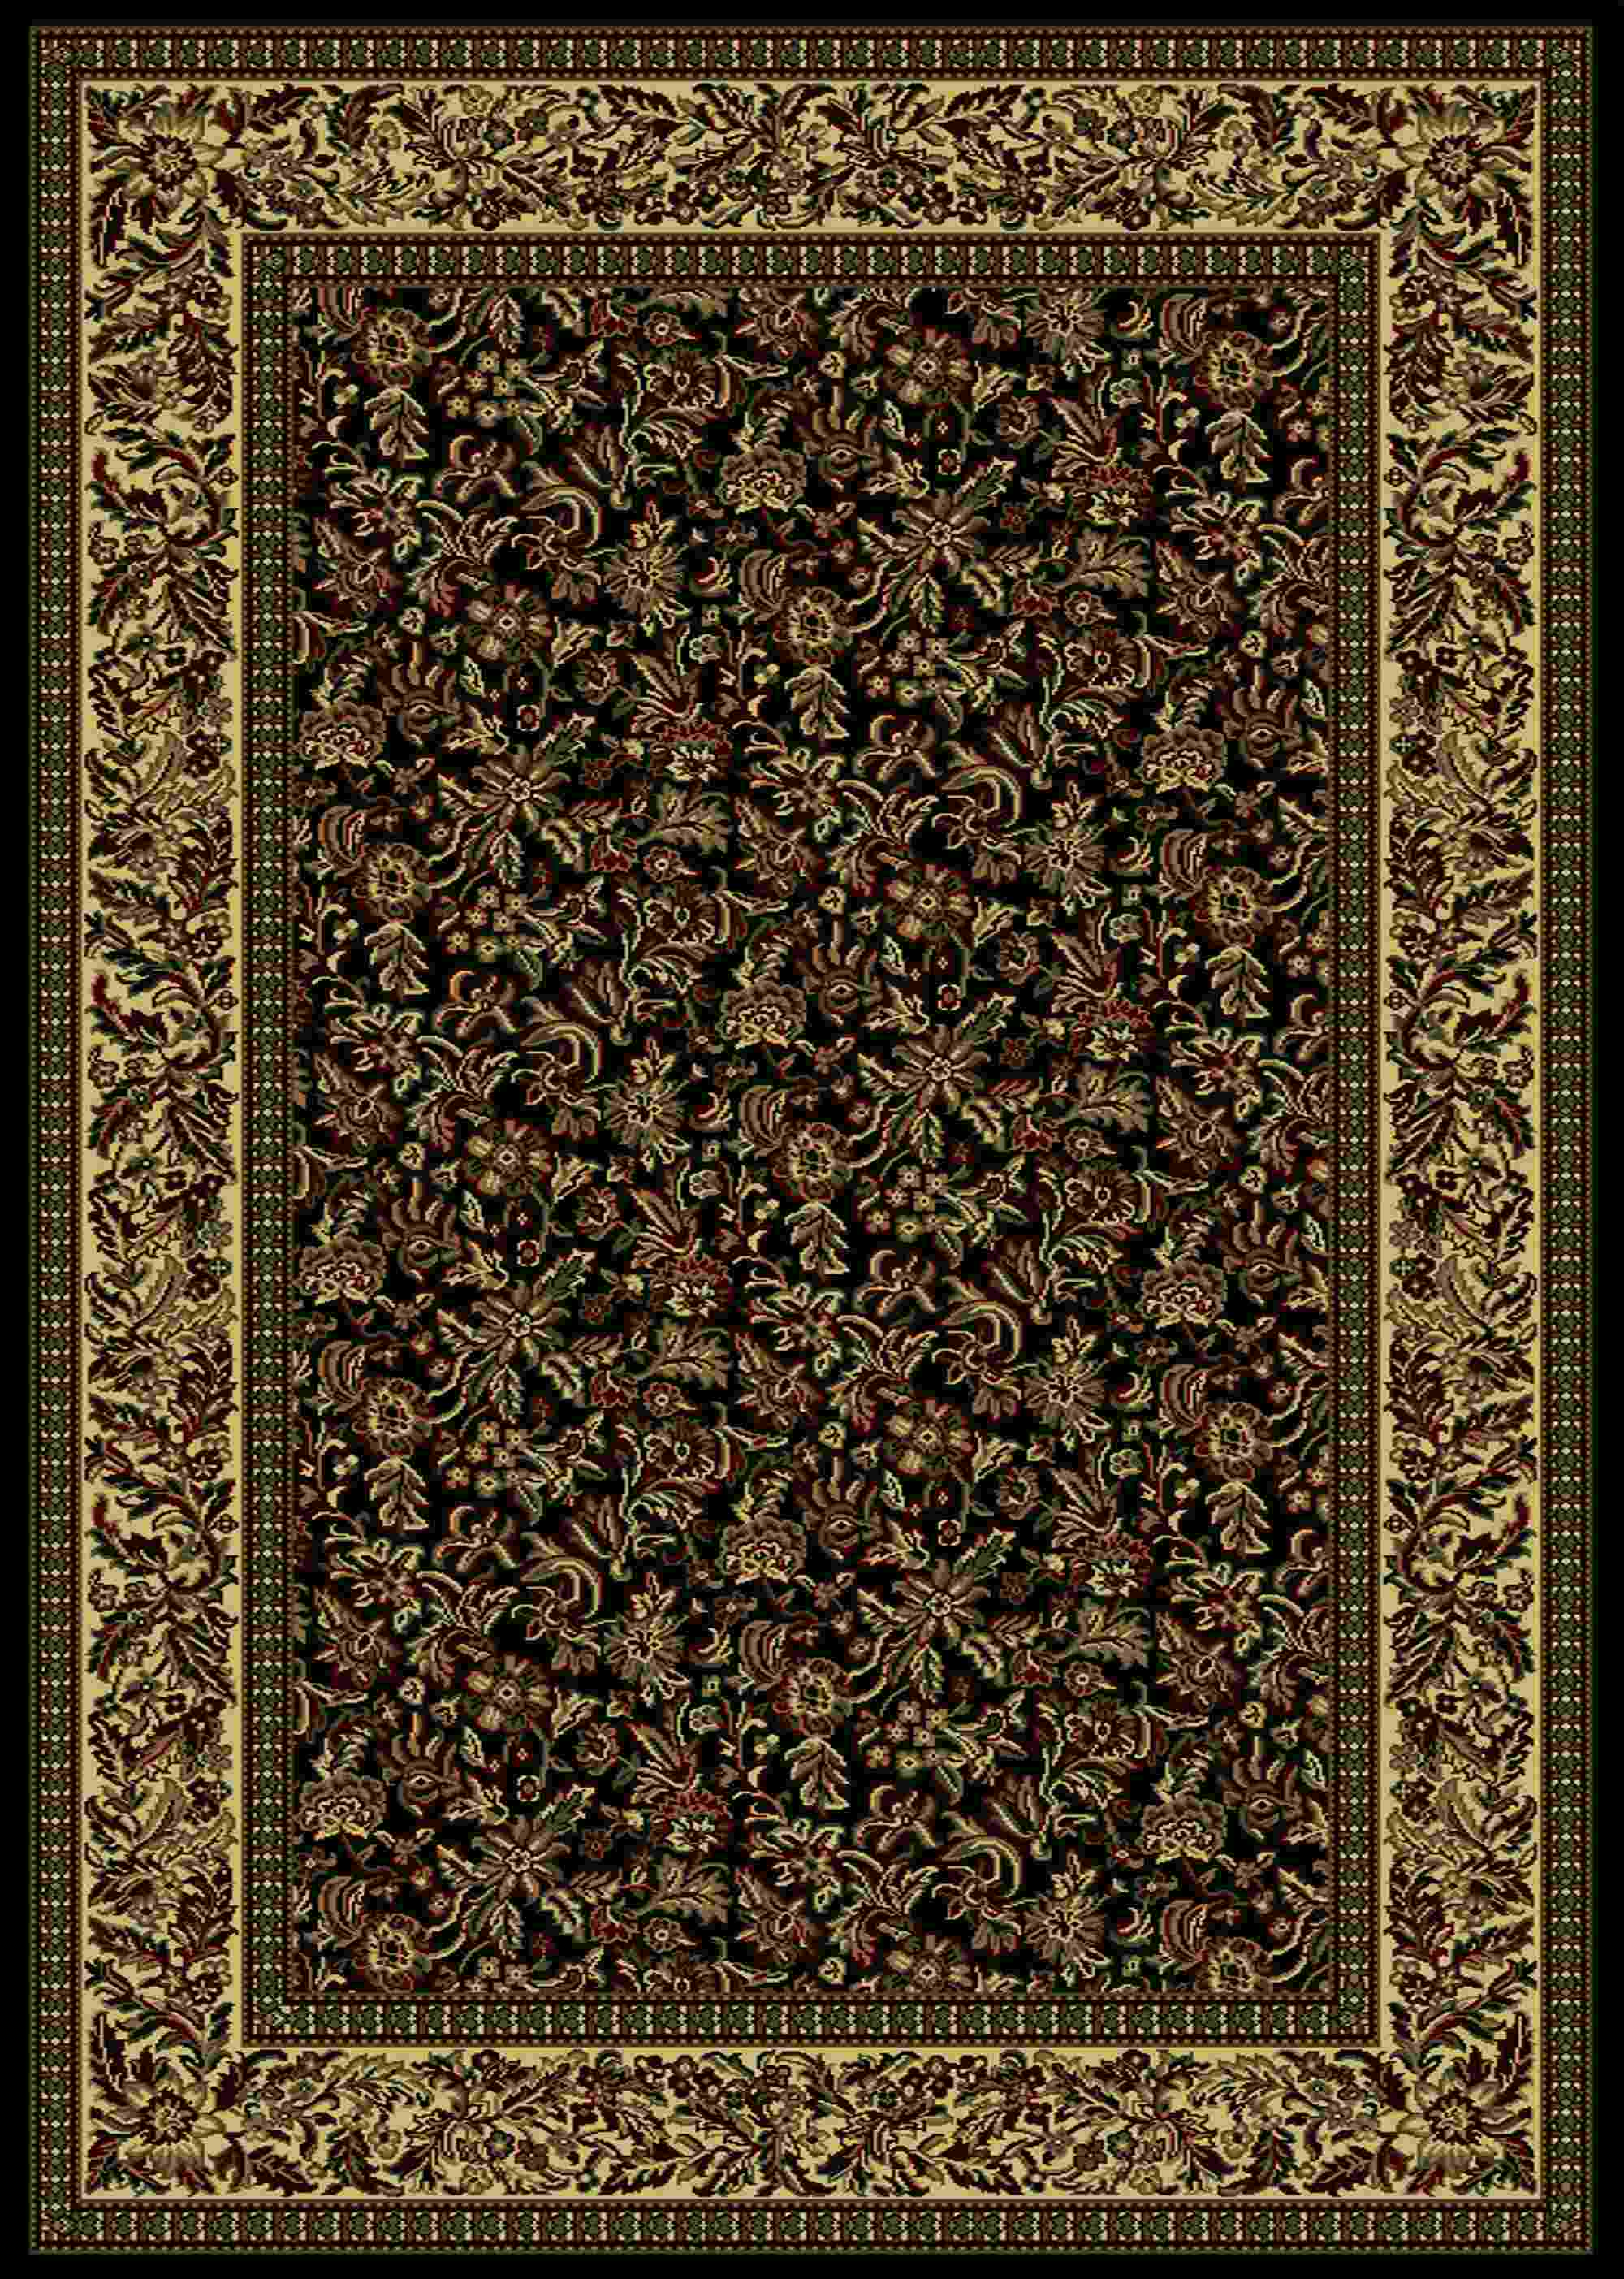 Radici Usa Castello 1219 Black Traditional Area Rug